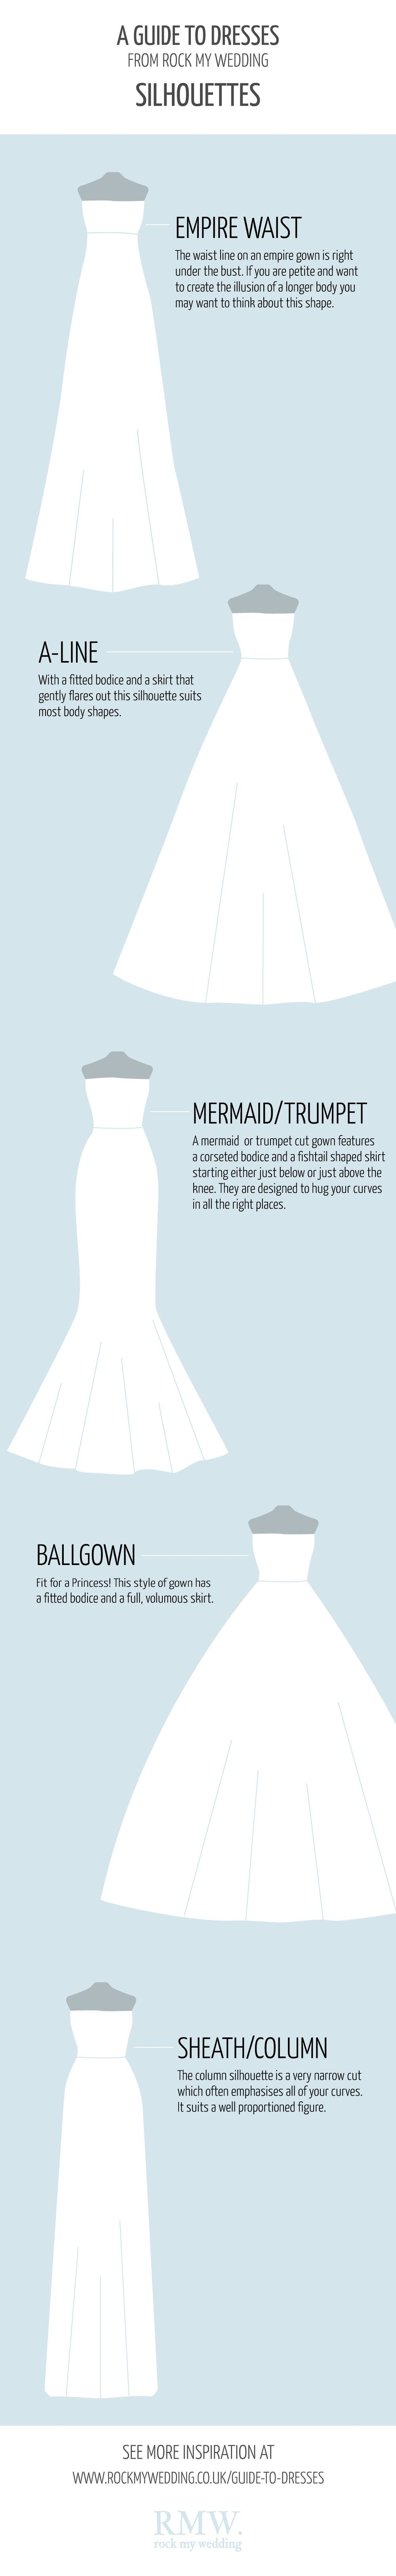 How to chose your wedding dress a guide from top wedding dress how to chose your wedding dress a guide from top wedding dress designers suzanne neville naomi neoh ian stuart stewart parvin charlotte balbier amanda wyatt ombrellifo Image collections